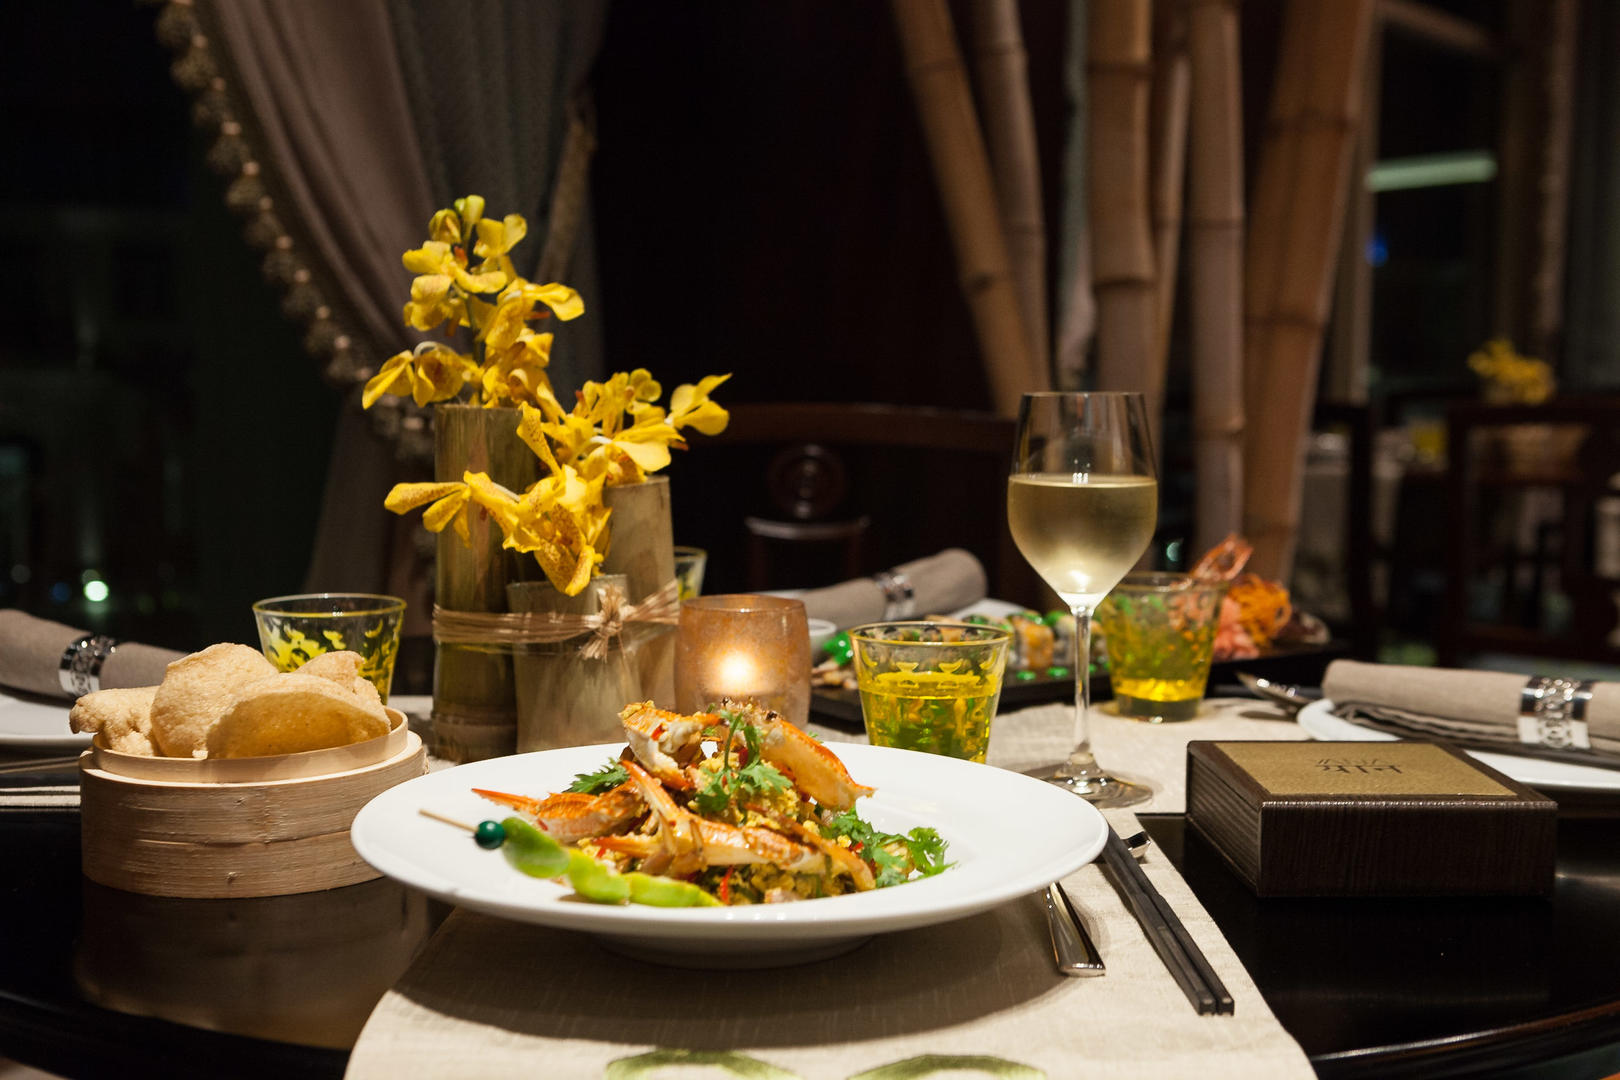 An Authentic Thai Dinner at Yana1